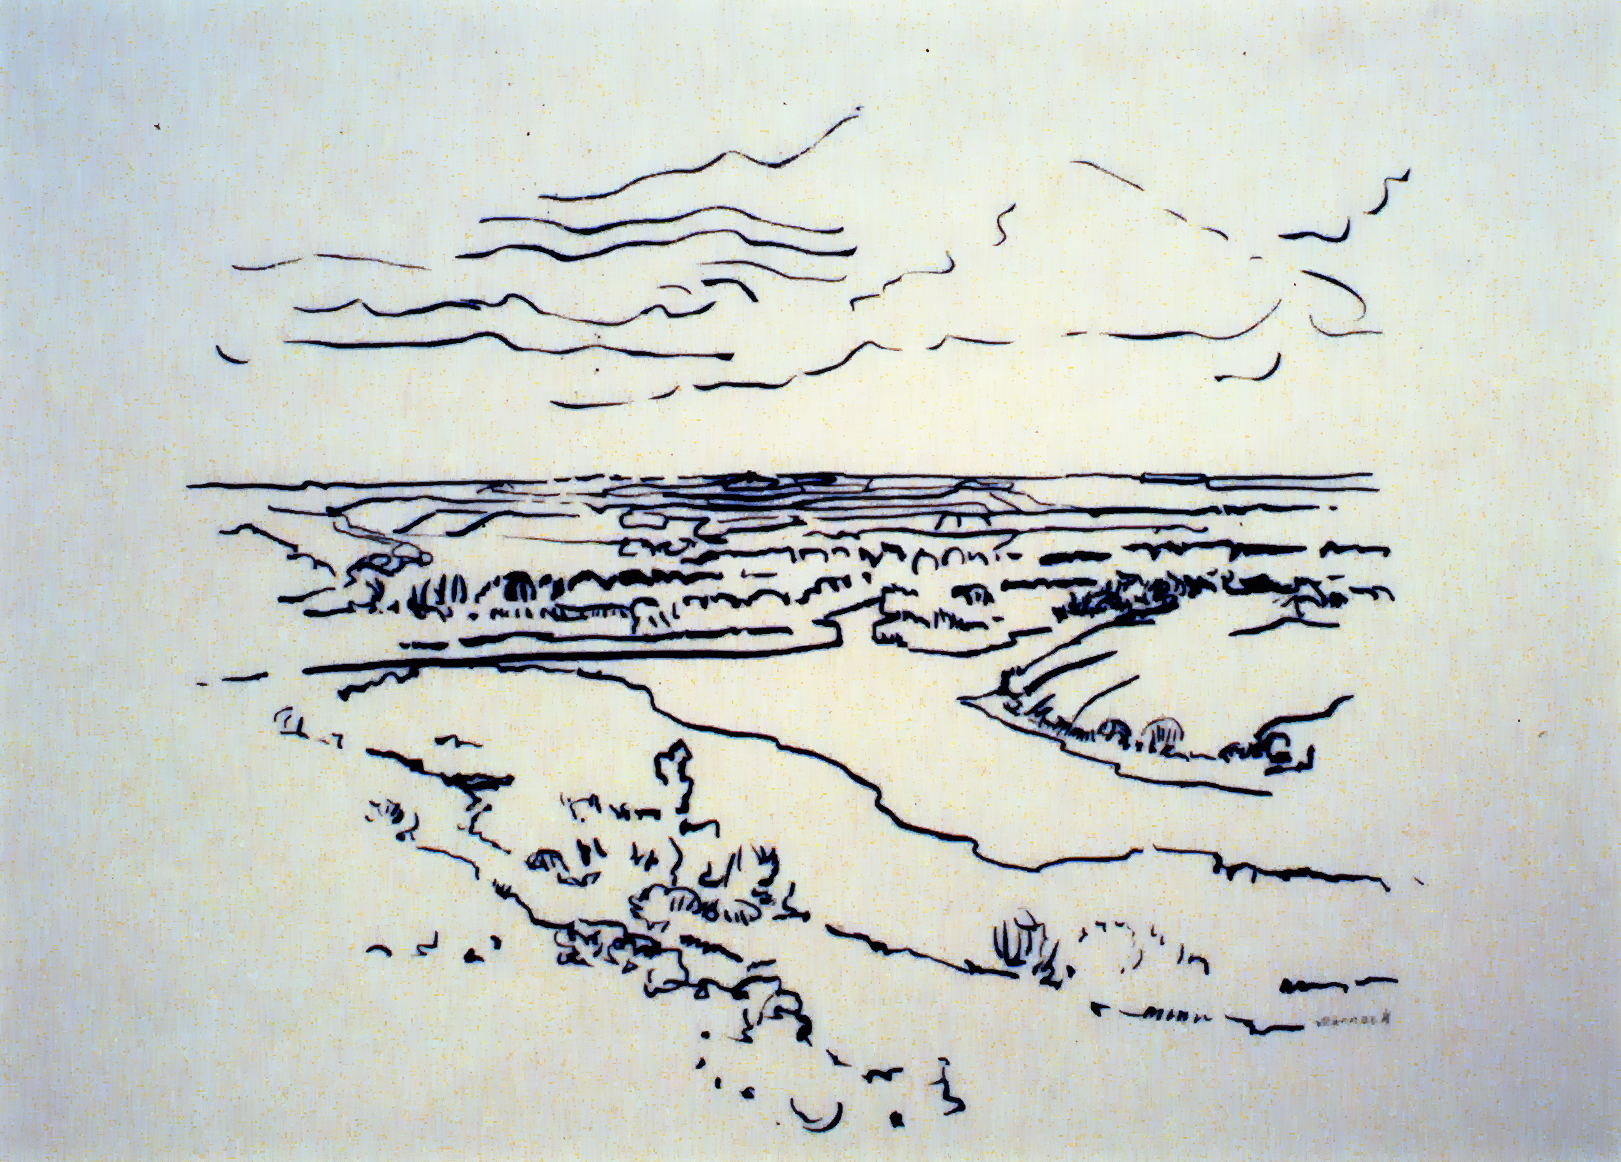 Saskatchewan Valley, n.d., Betty Warnock, pen and ink on paper, 21.5 x 26.5 cm, 1980.02.04. Purchase made possible through the support of Casabello Wines Ltd. and the Canada Council Special Purchase Assistance program.